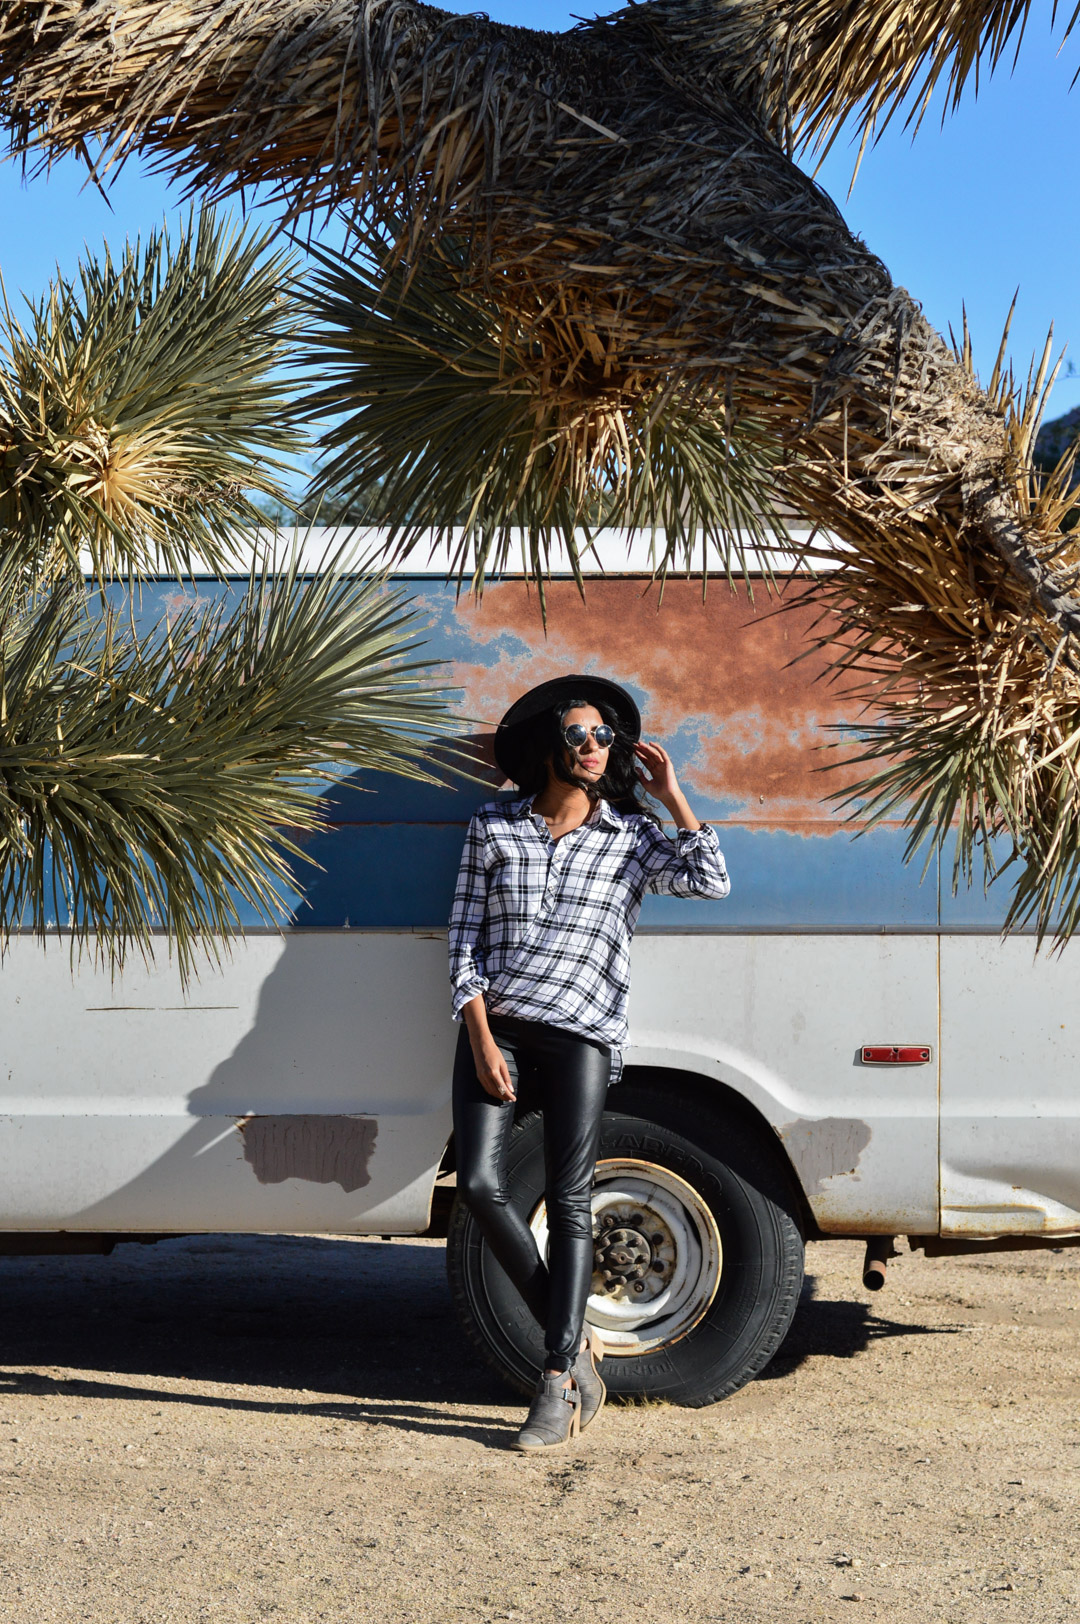 joshua-tree-national-park-california-travel-blogger-fashion 8